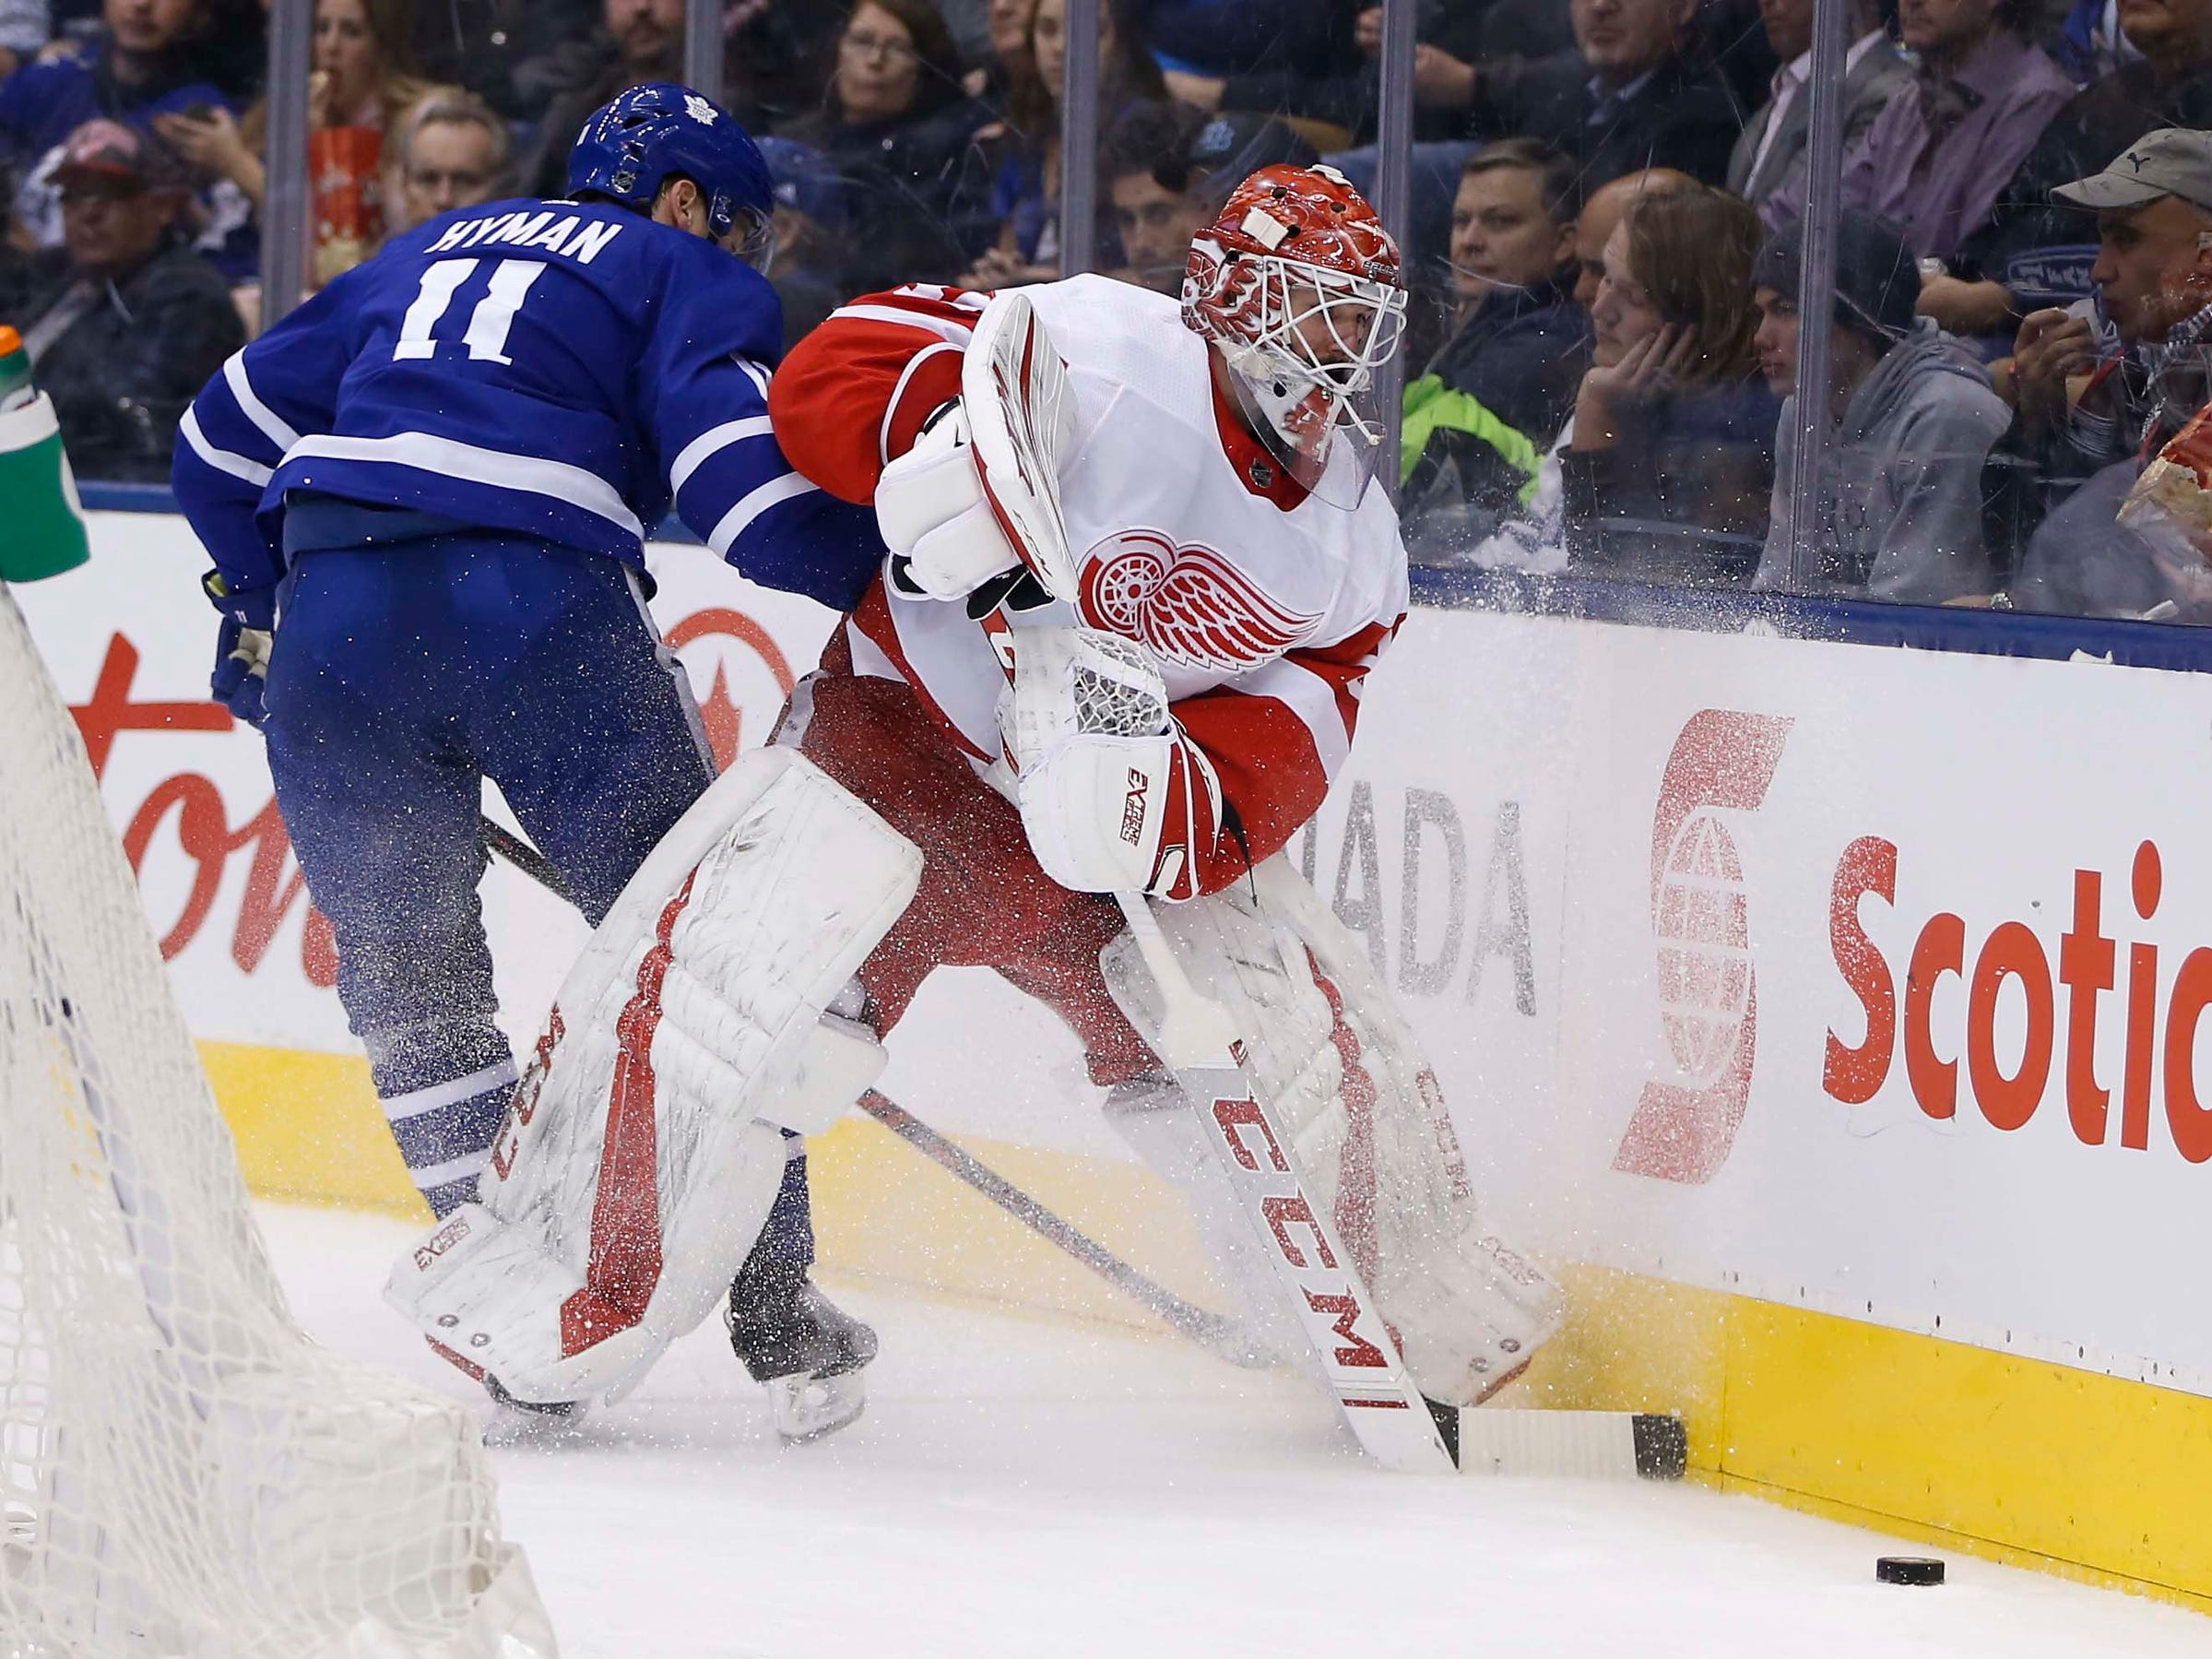 Detroit Red Wings goaltender Jonathan Bernier plays the puck while being pressured by Toronto Maple Leafs forward Zach Hyman during the second period at Scotiabank Arena, Dec. 6, 2018 in Toronto, Ontario, Canada.